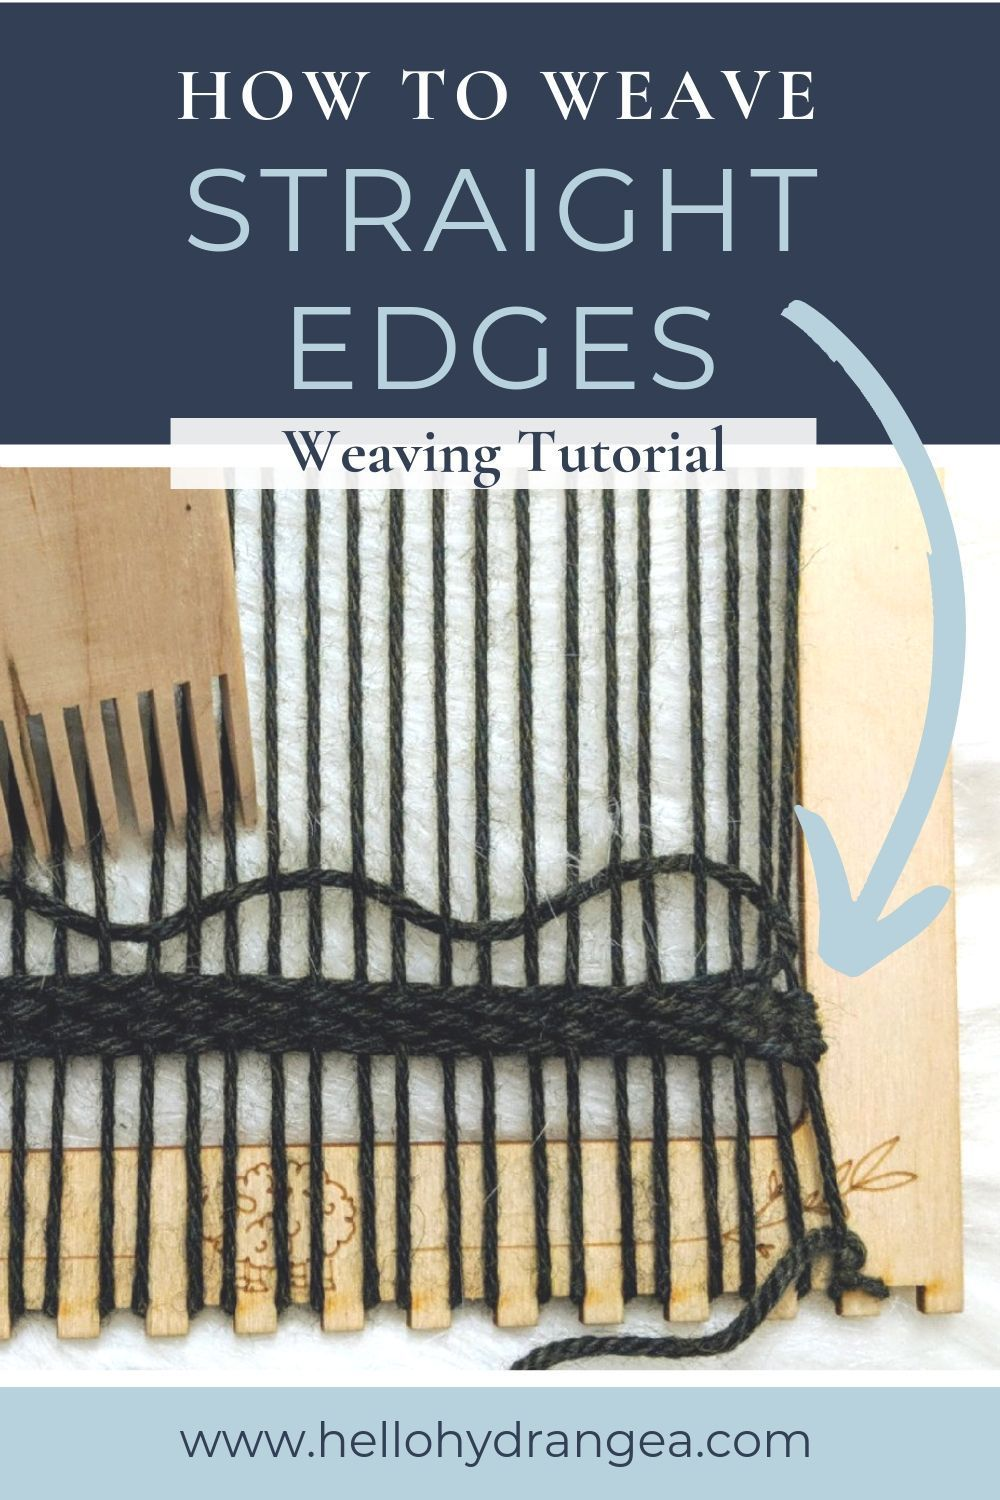 Weaving How To: Keep Your Sides Straight — Hello Hydrangea